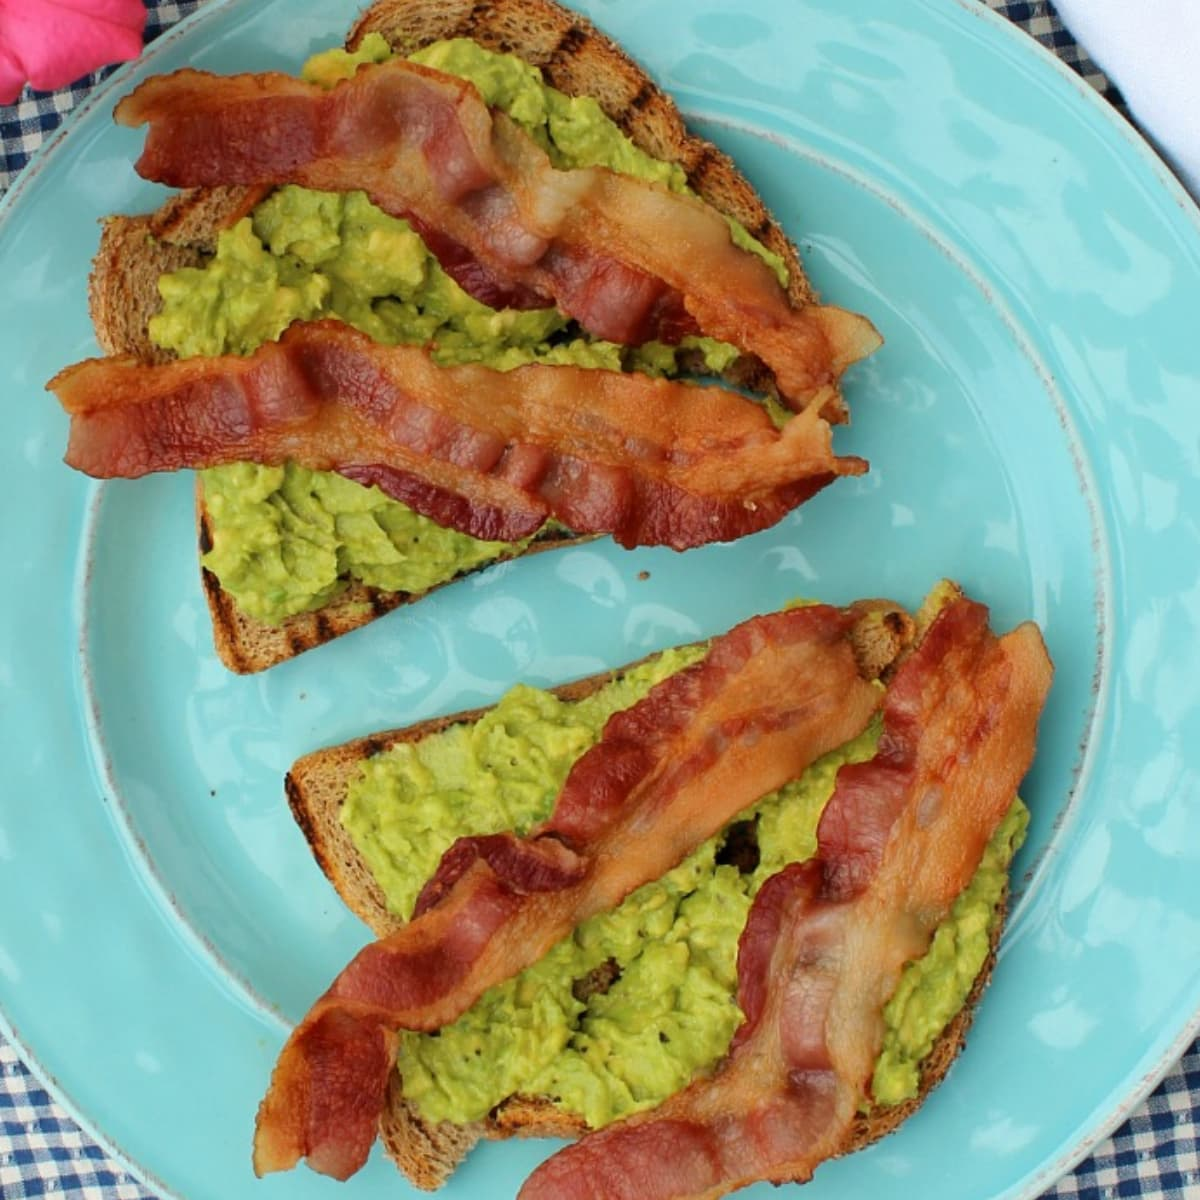 Two slices of avocado toast with bacon on a plate